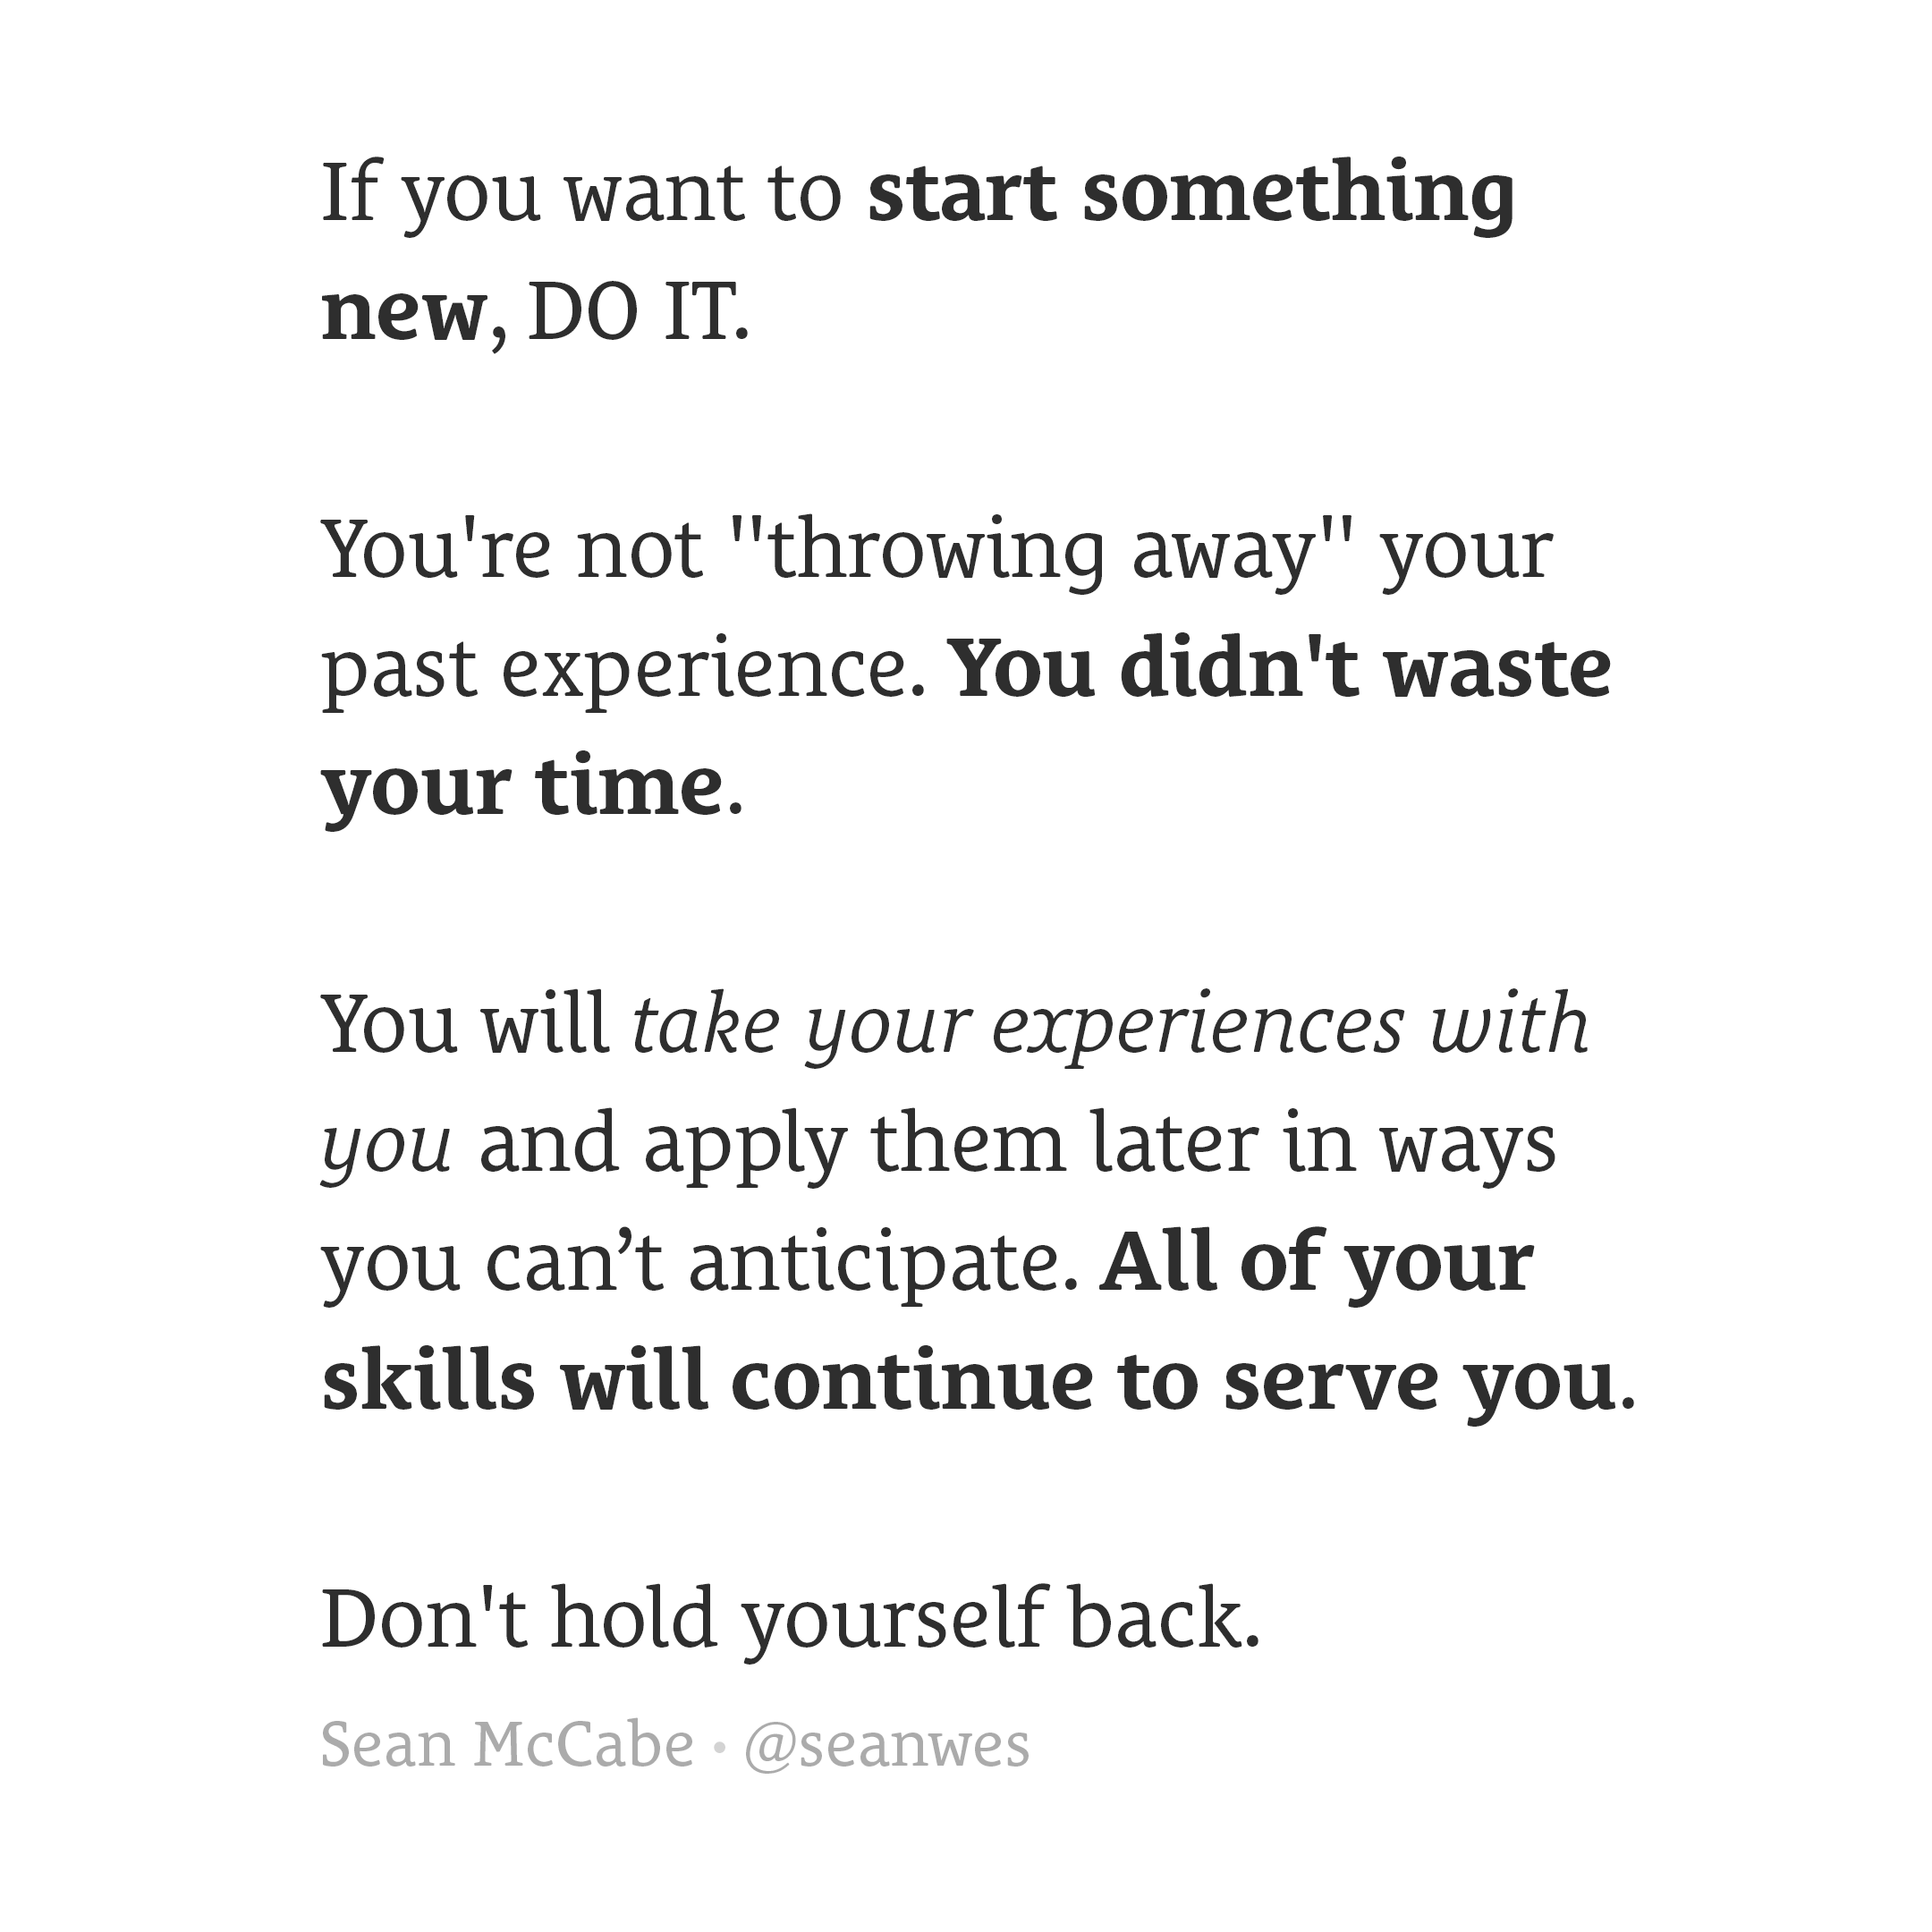 If you want to start something new, do it.